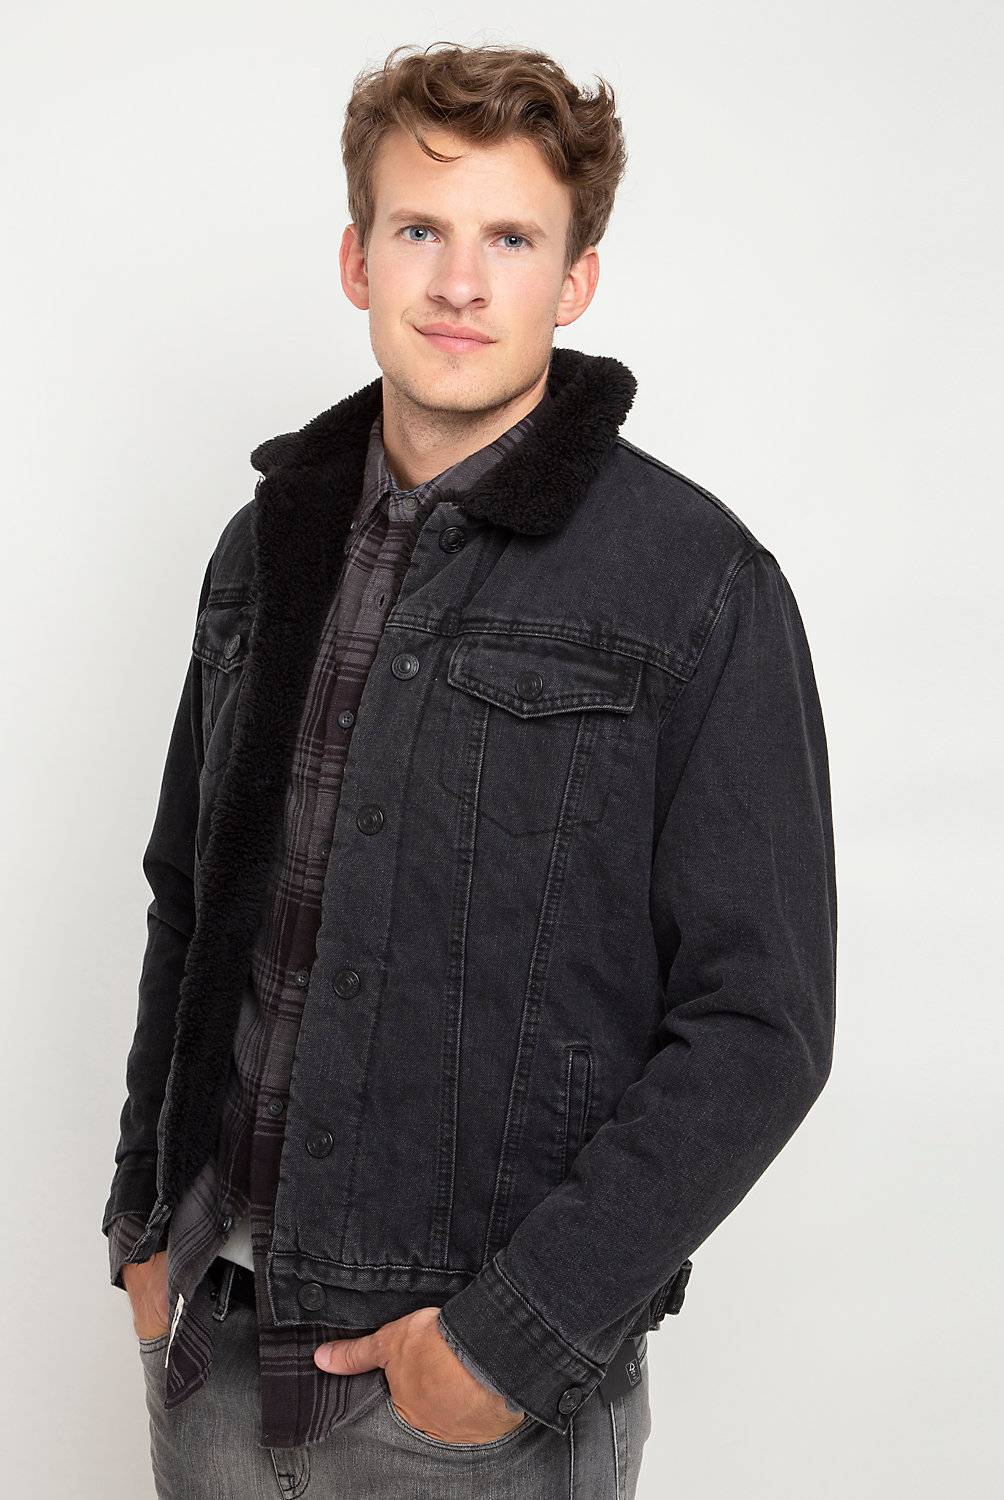 Americanino - Campera denim Dad